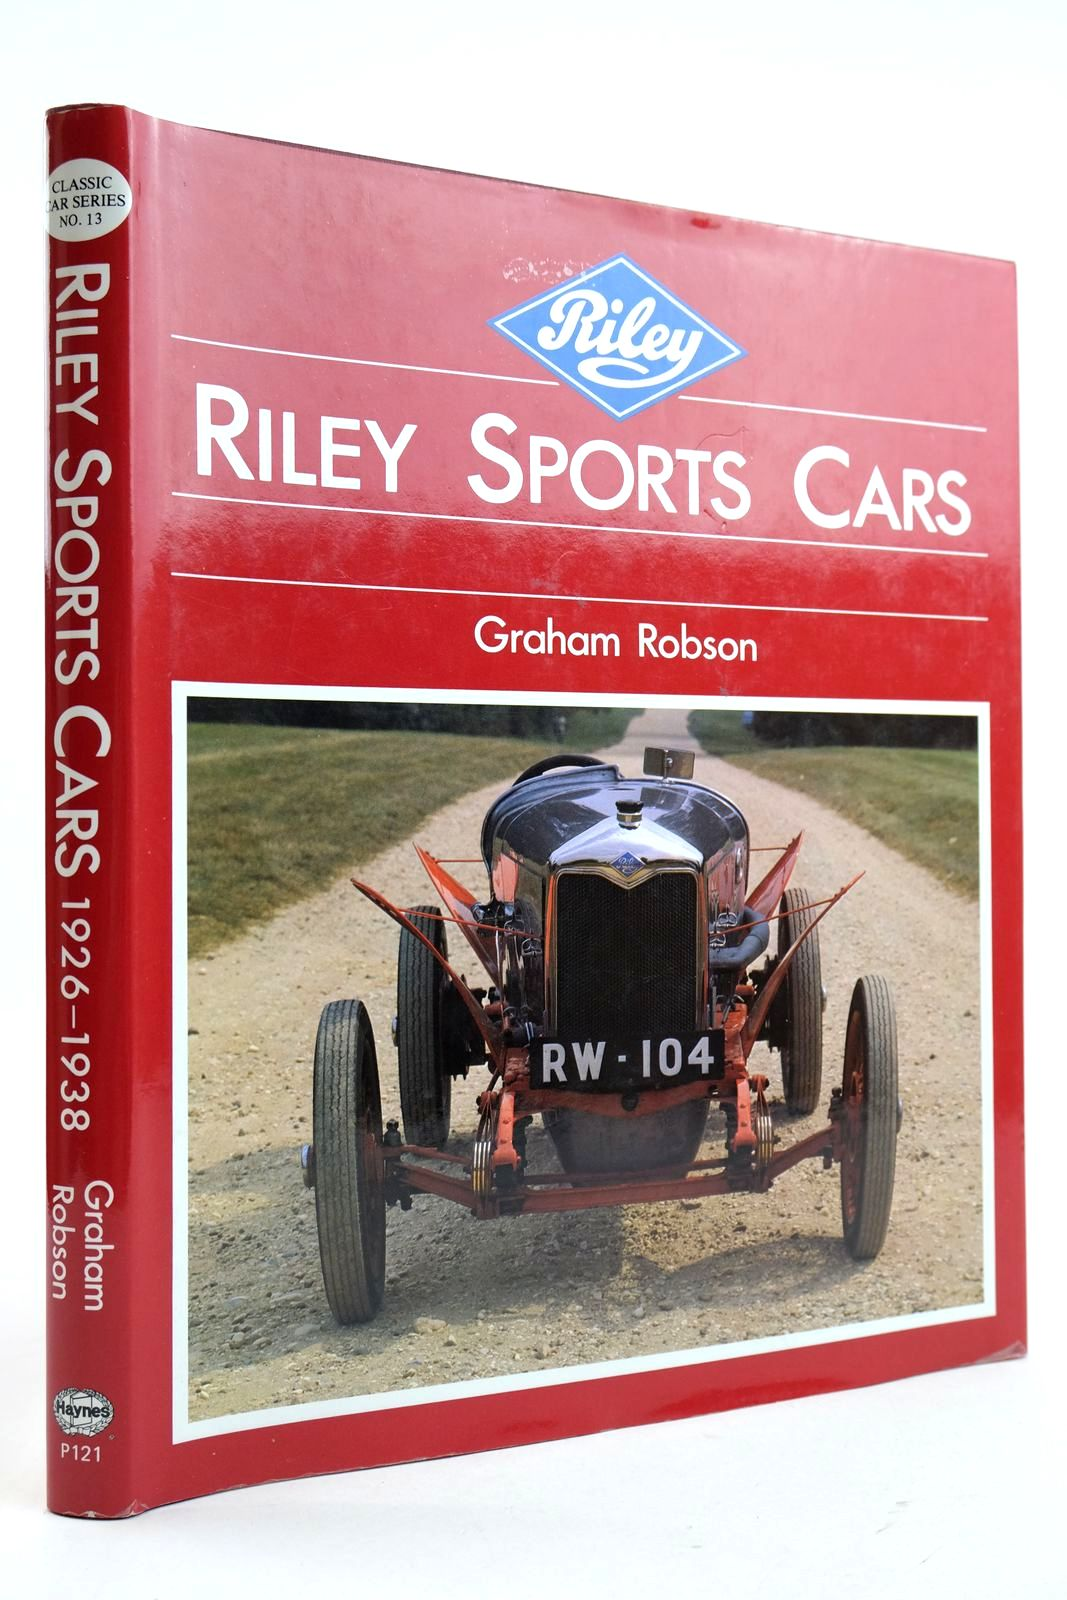 Photo of RILEY SPORTS CARS 1926-1938 written by Robson, Graham published by The Oxford Illustrated Press (STOCK CODE: 2132826)  for sale by Stella & Rose's Books